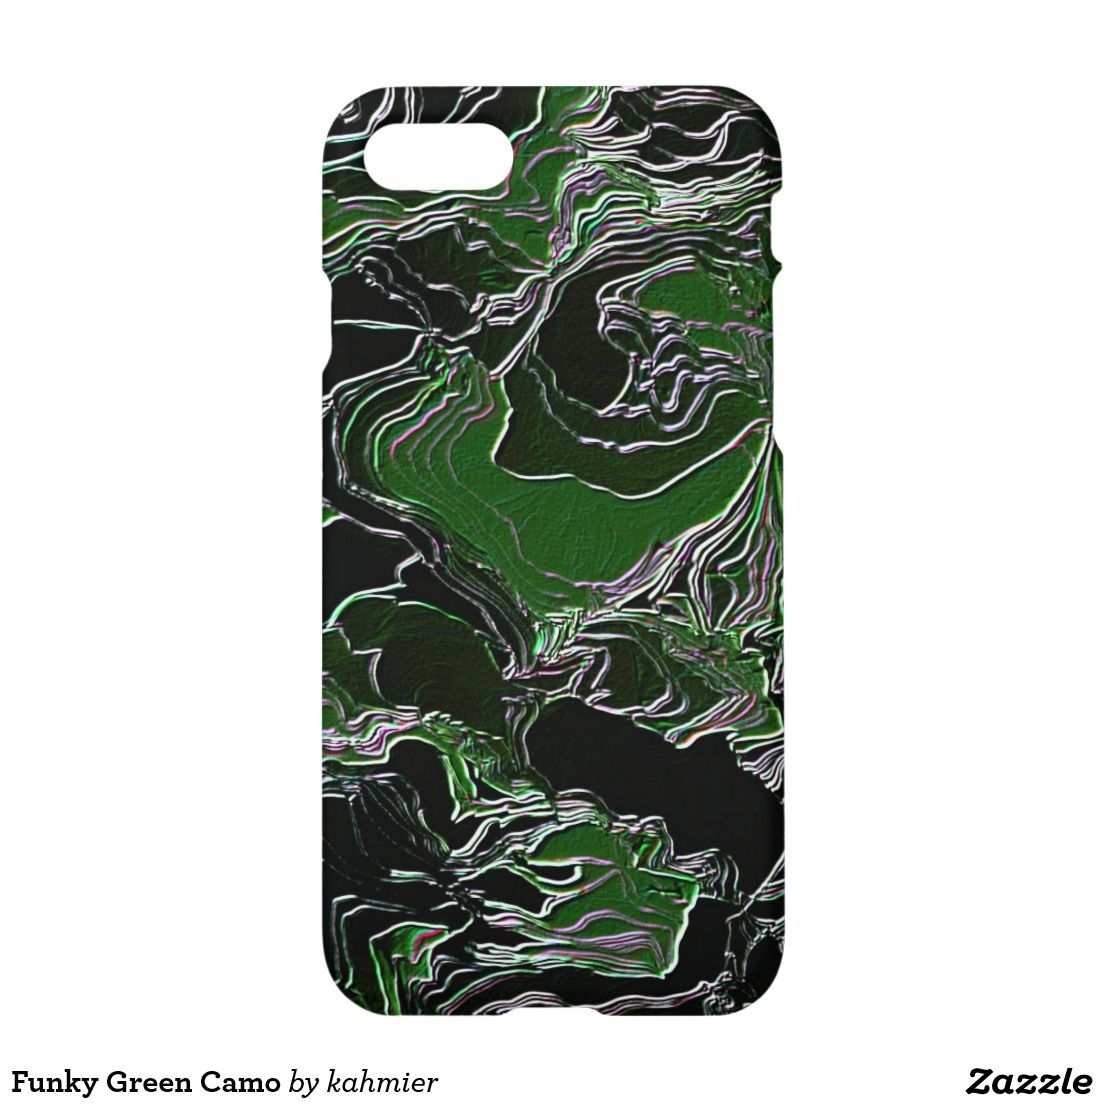 Funky green camo iphone 7 case 30 off with code